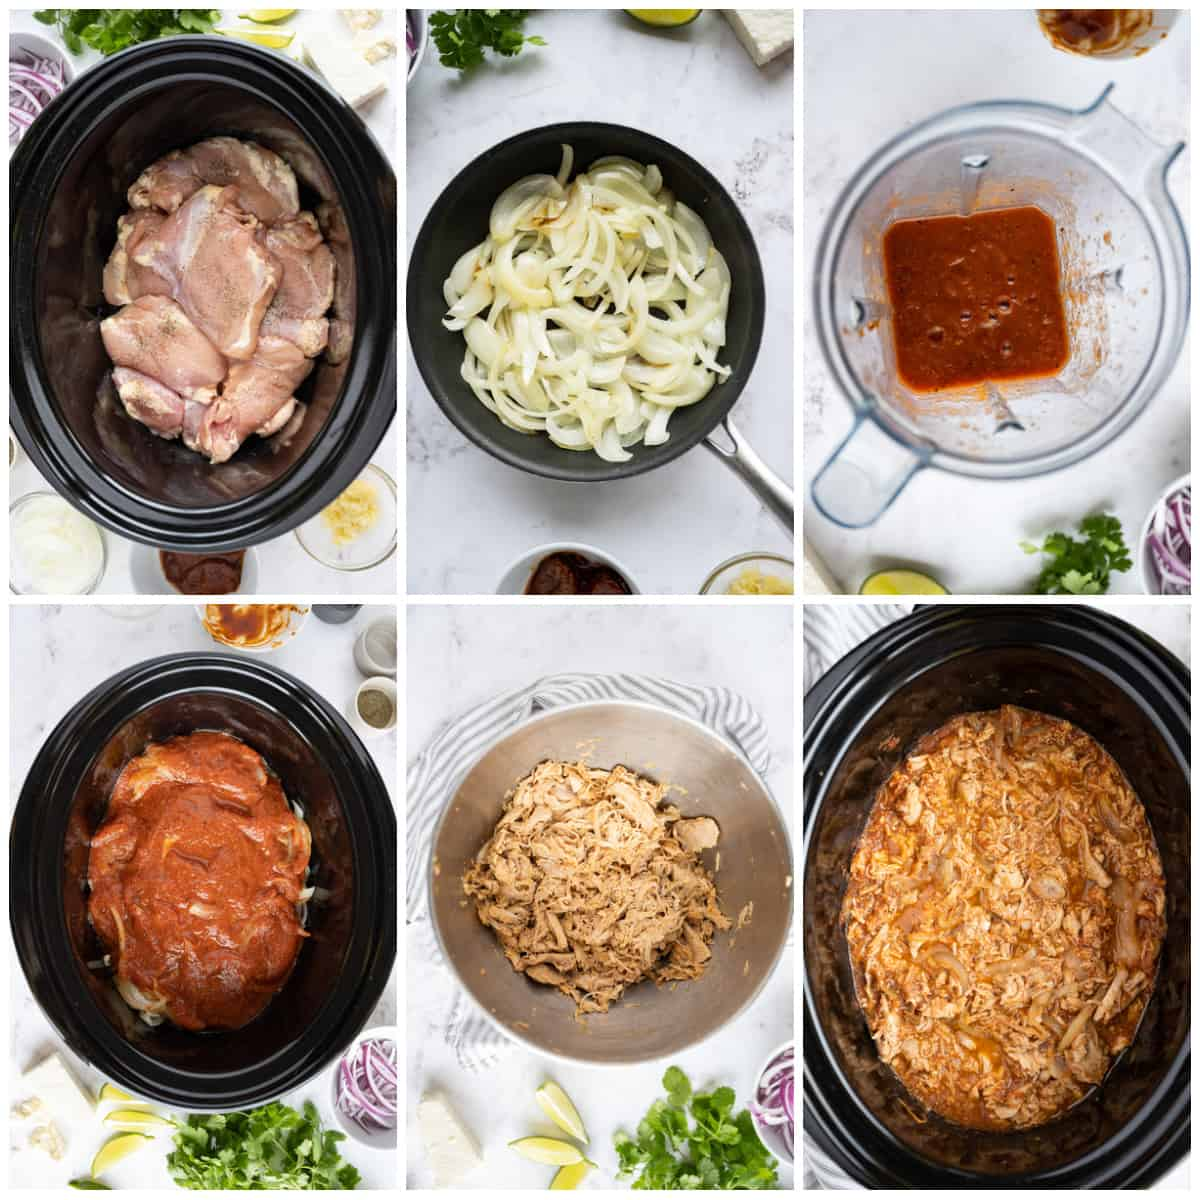 Step by step photos on how to make Slow Cooker Chicken Tinga